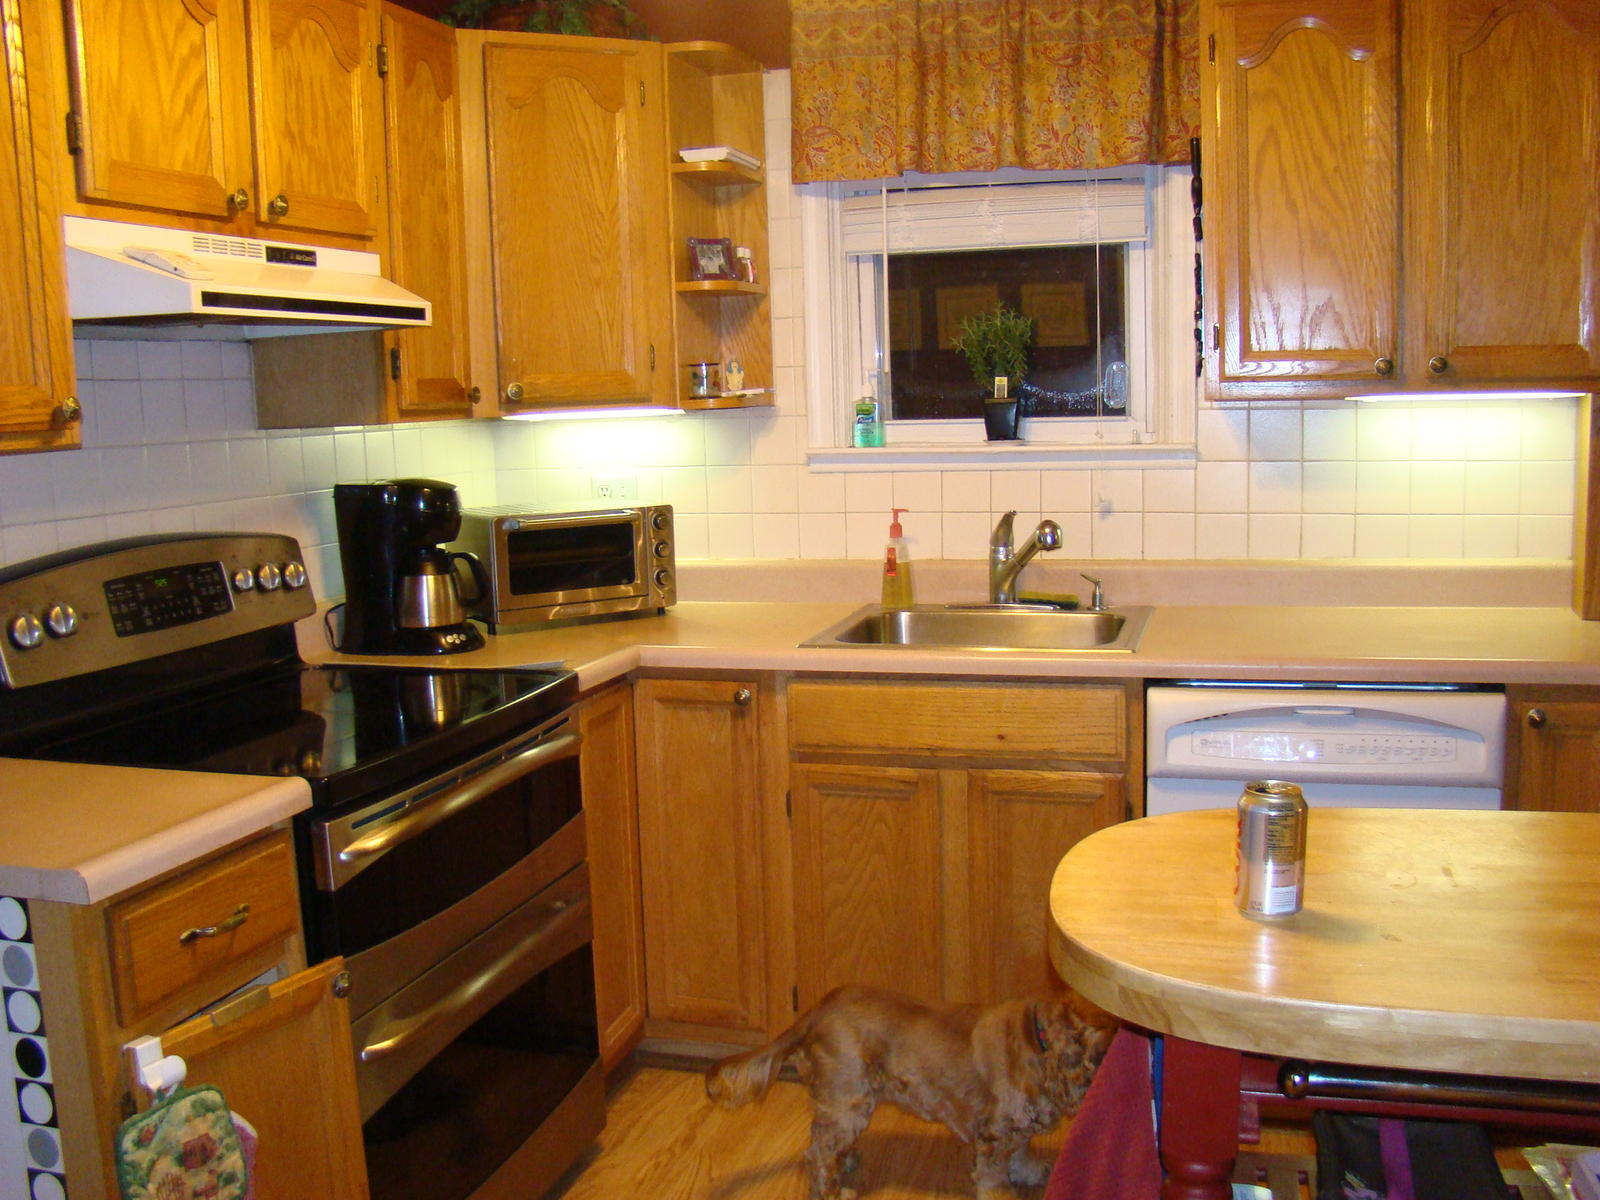 kitchen redecorating suggestions needed (granite, panel ...